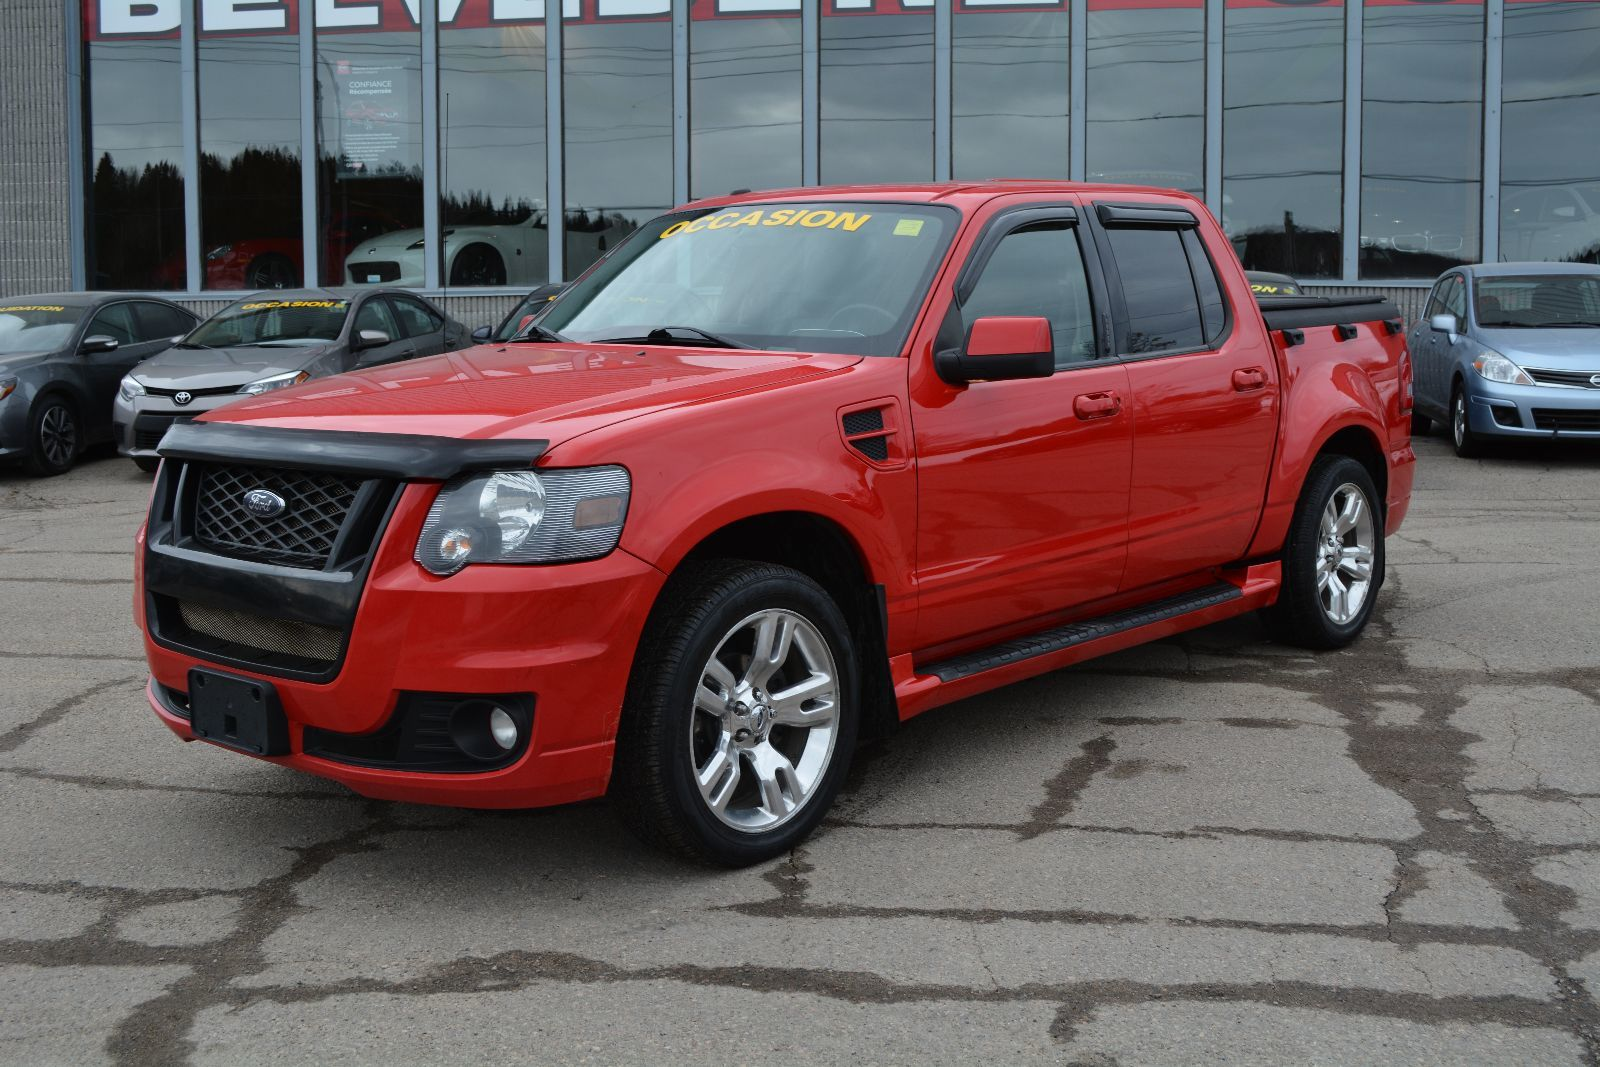 2009 Ford Explorer Sport Trac Adrenalin Awd Cuir Toit Nav Dvd Fuel Filter Vehicule Tres Rare Used For Sale In St Jrme Belvedere Nissan